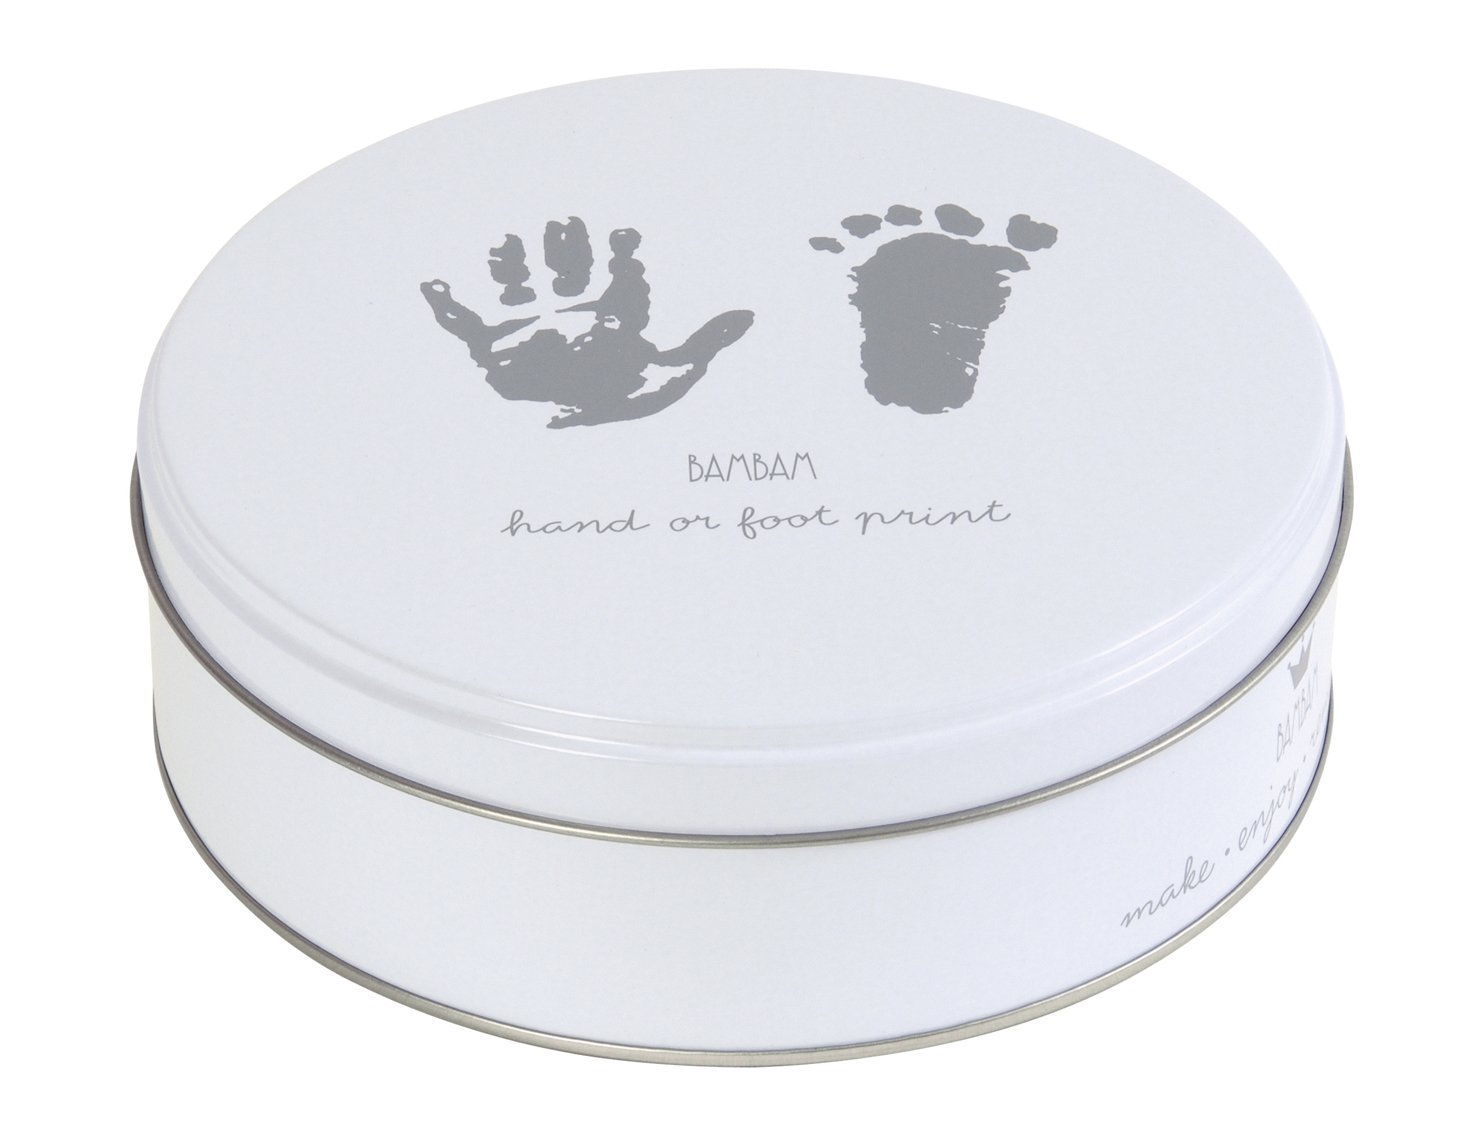 BamBam Hand and Foot Print Kit 8711811046911